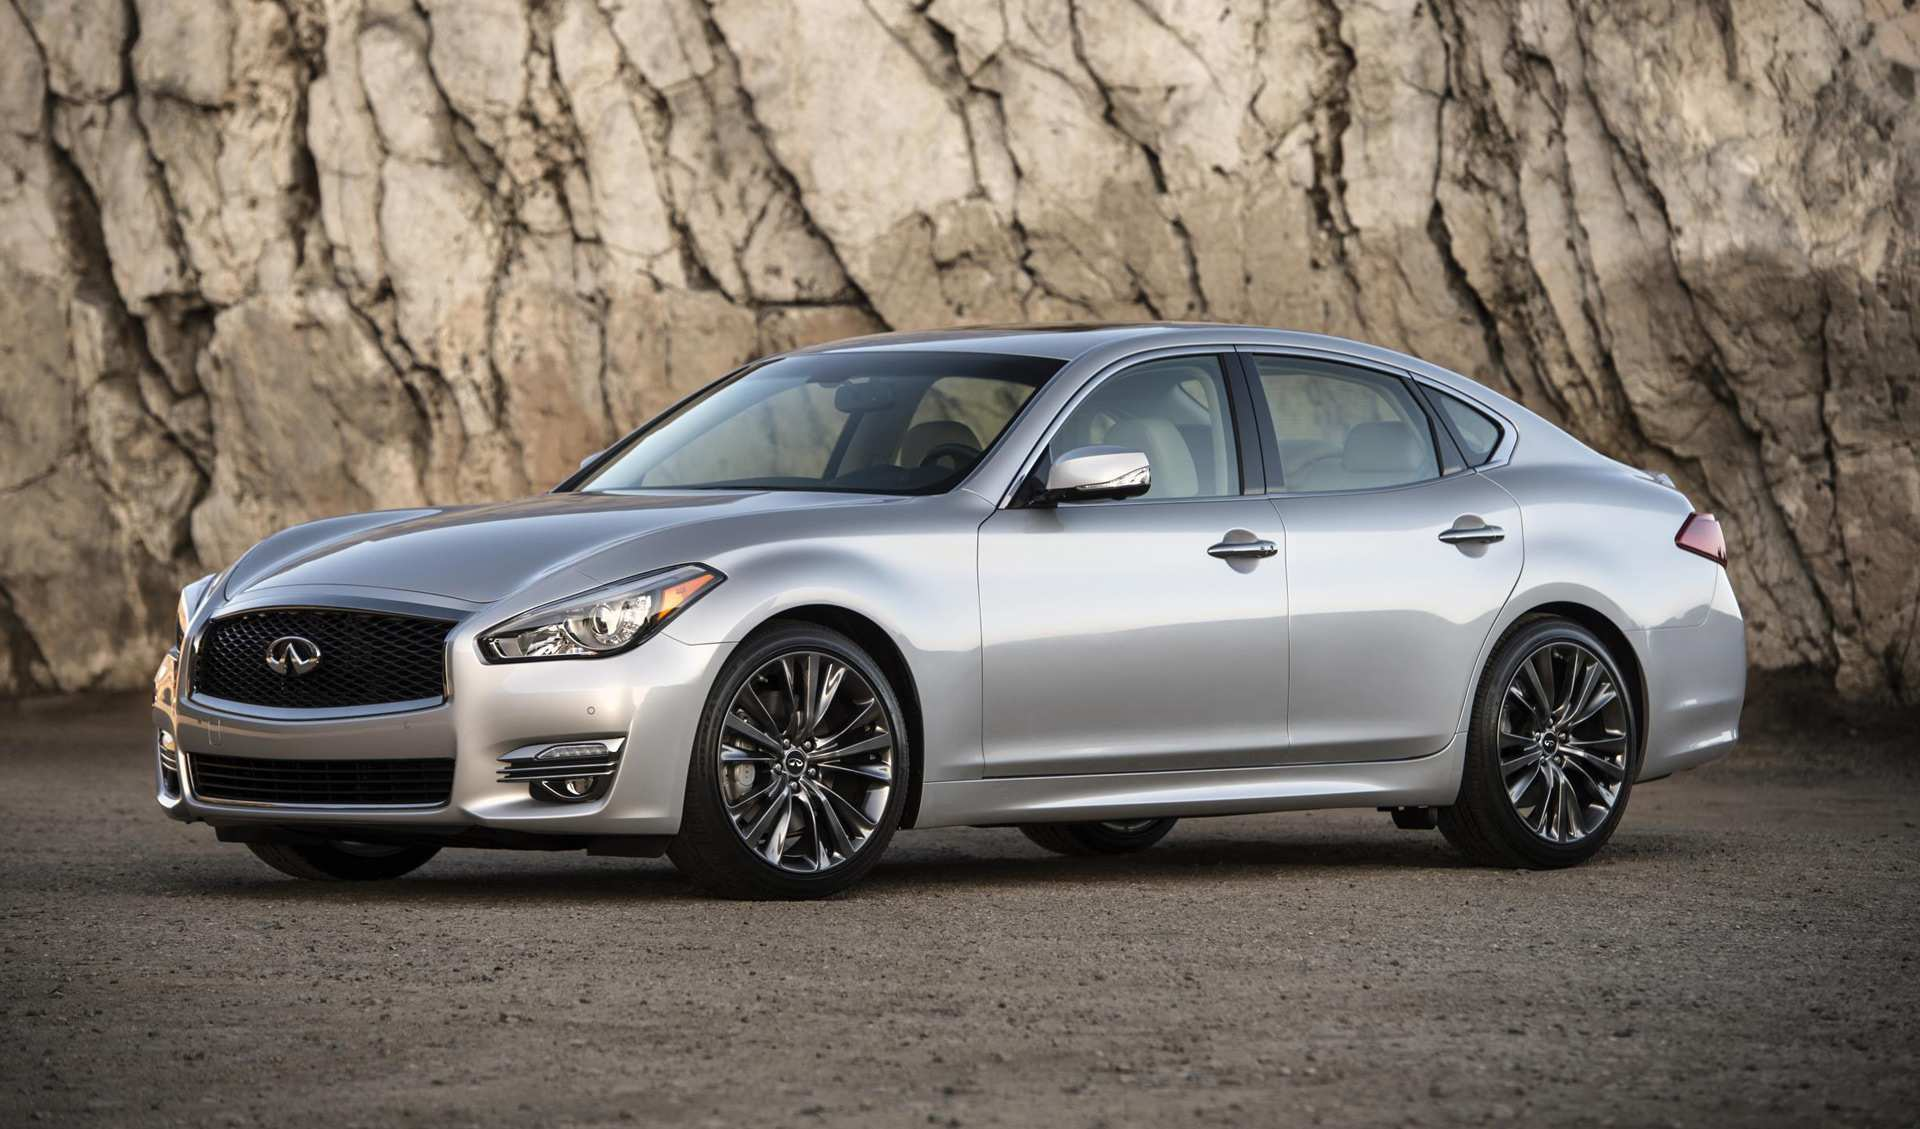 92 A 2020 Infiniti Q70 Spy Photos Style